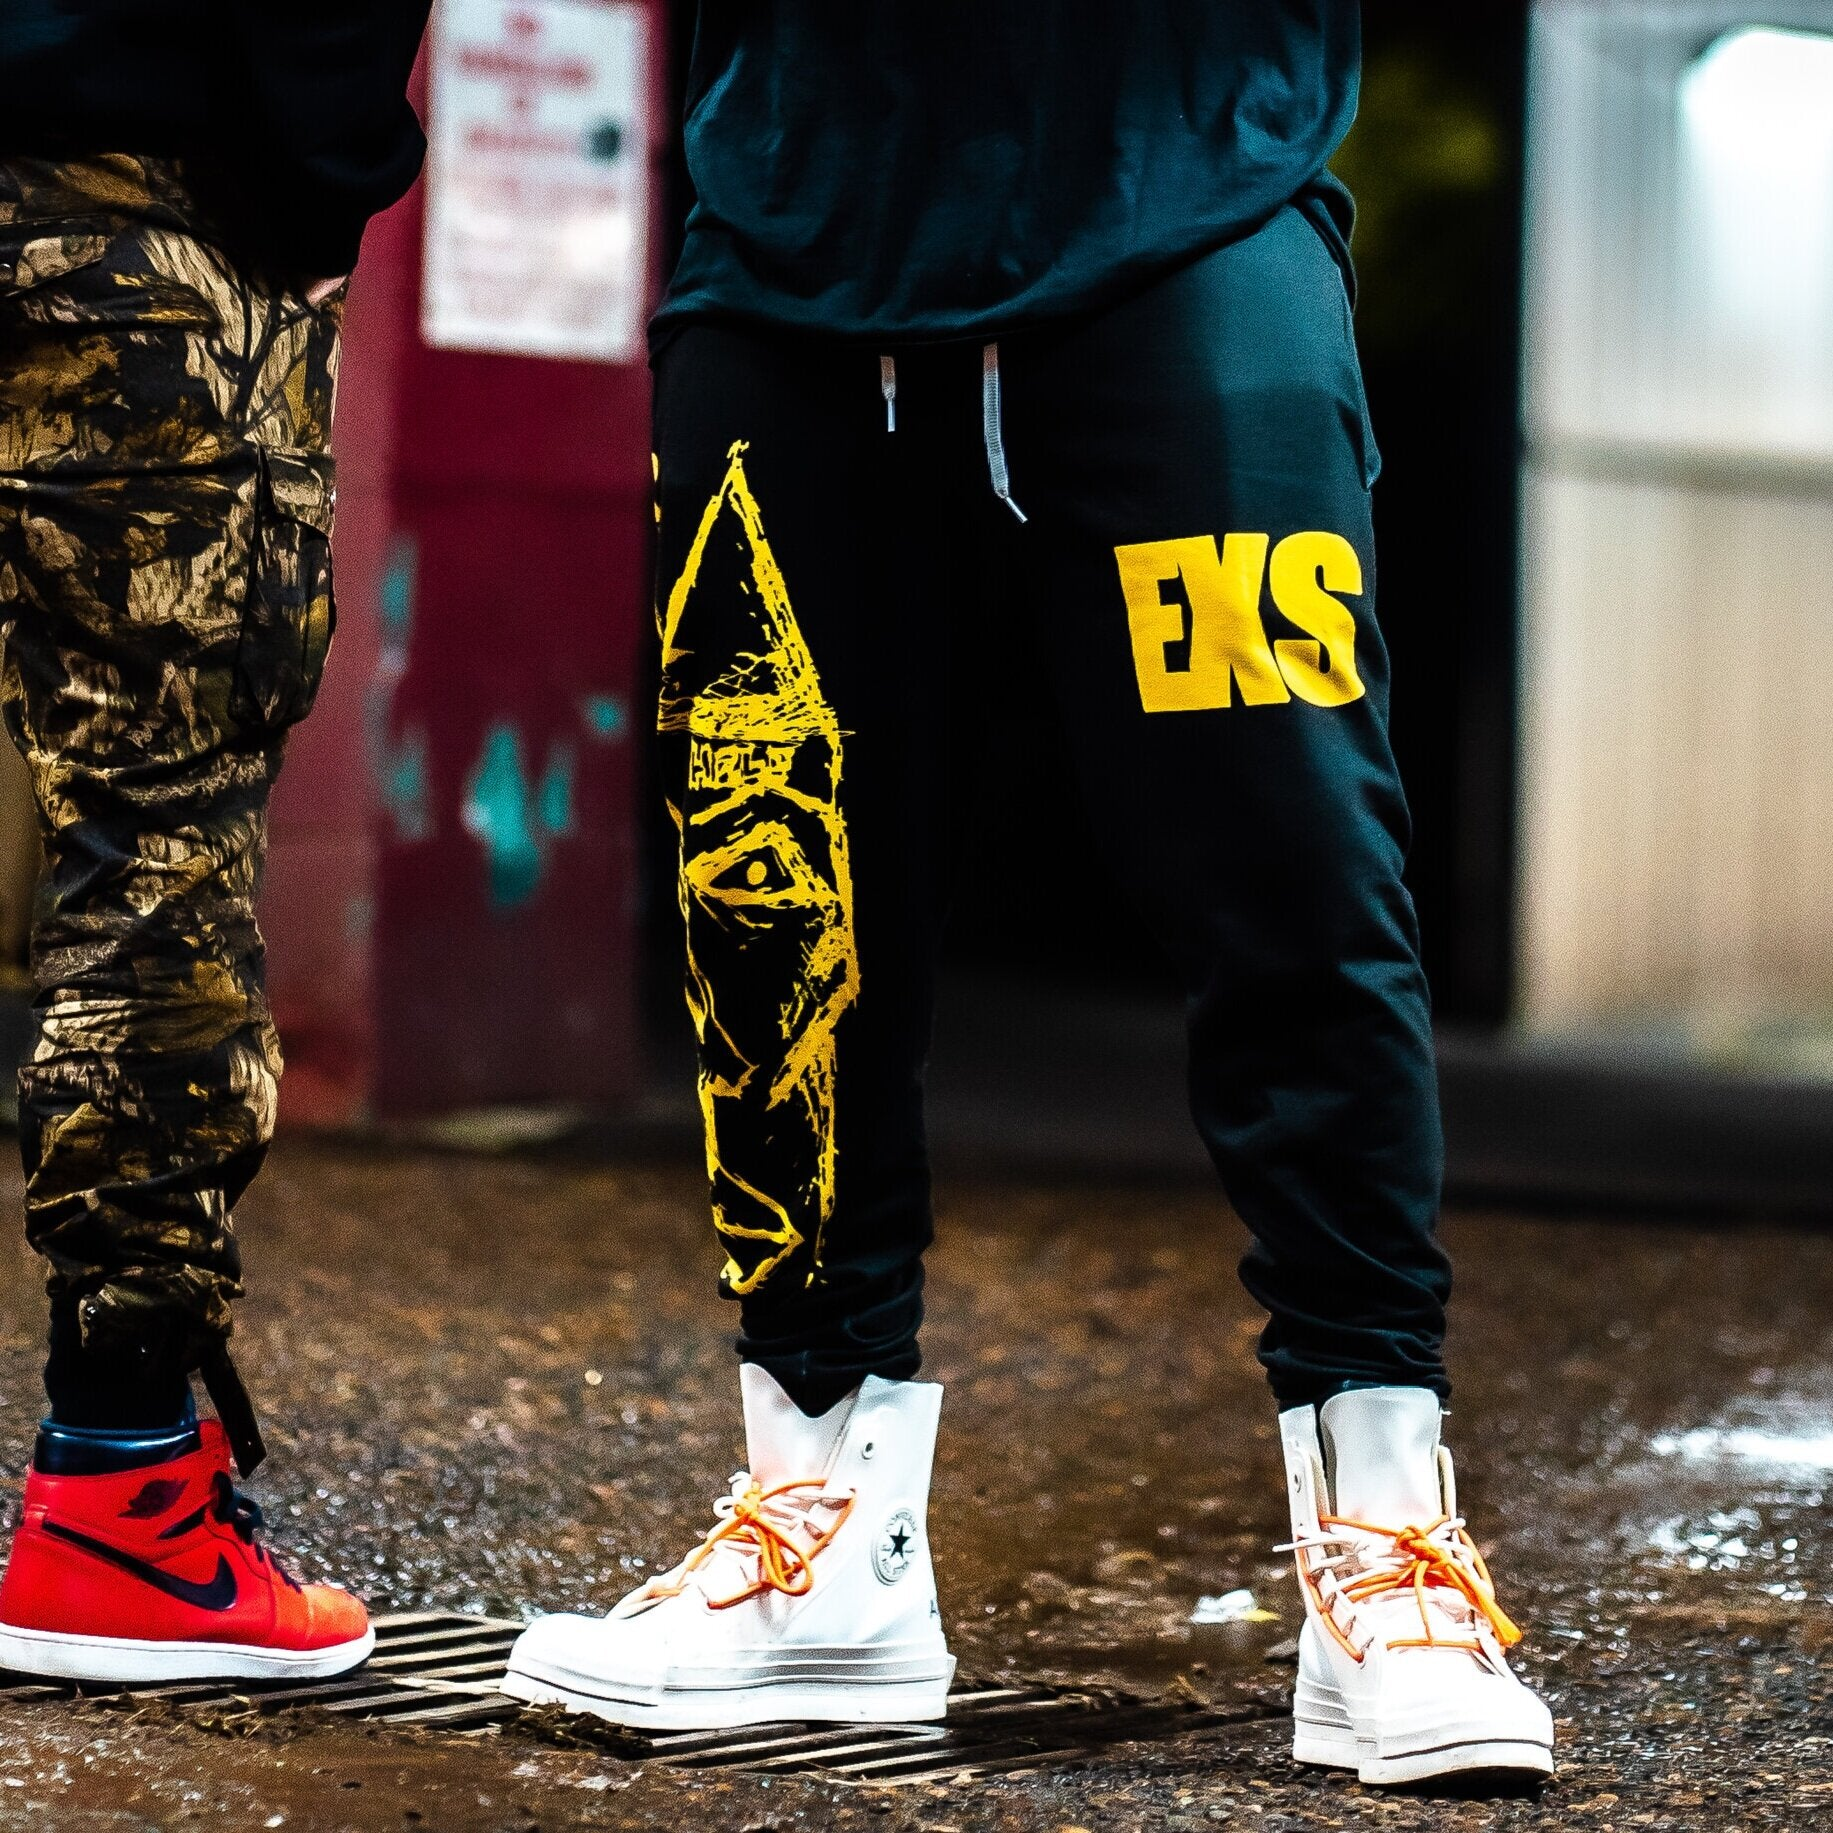 EXS Crown Joggers